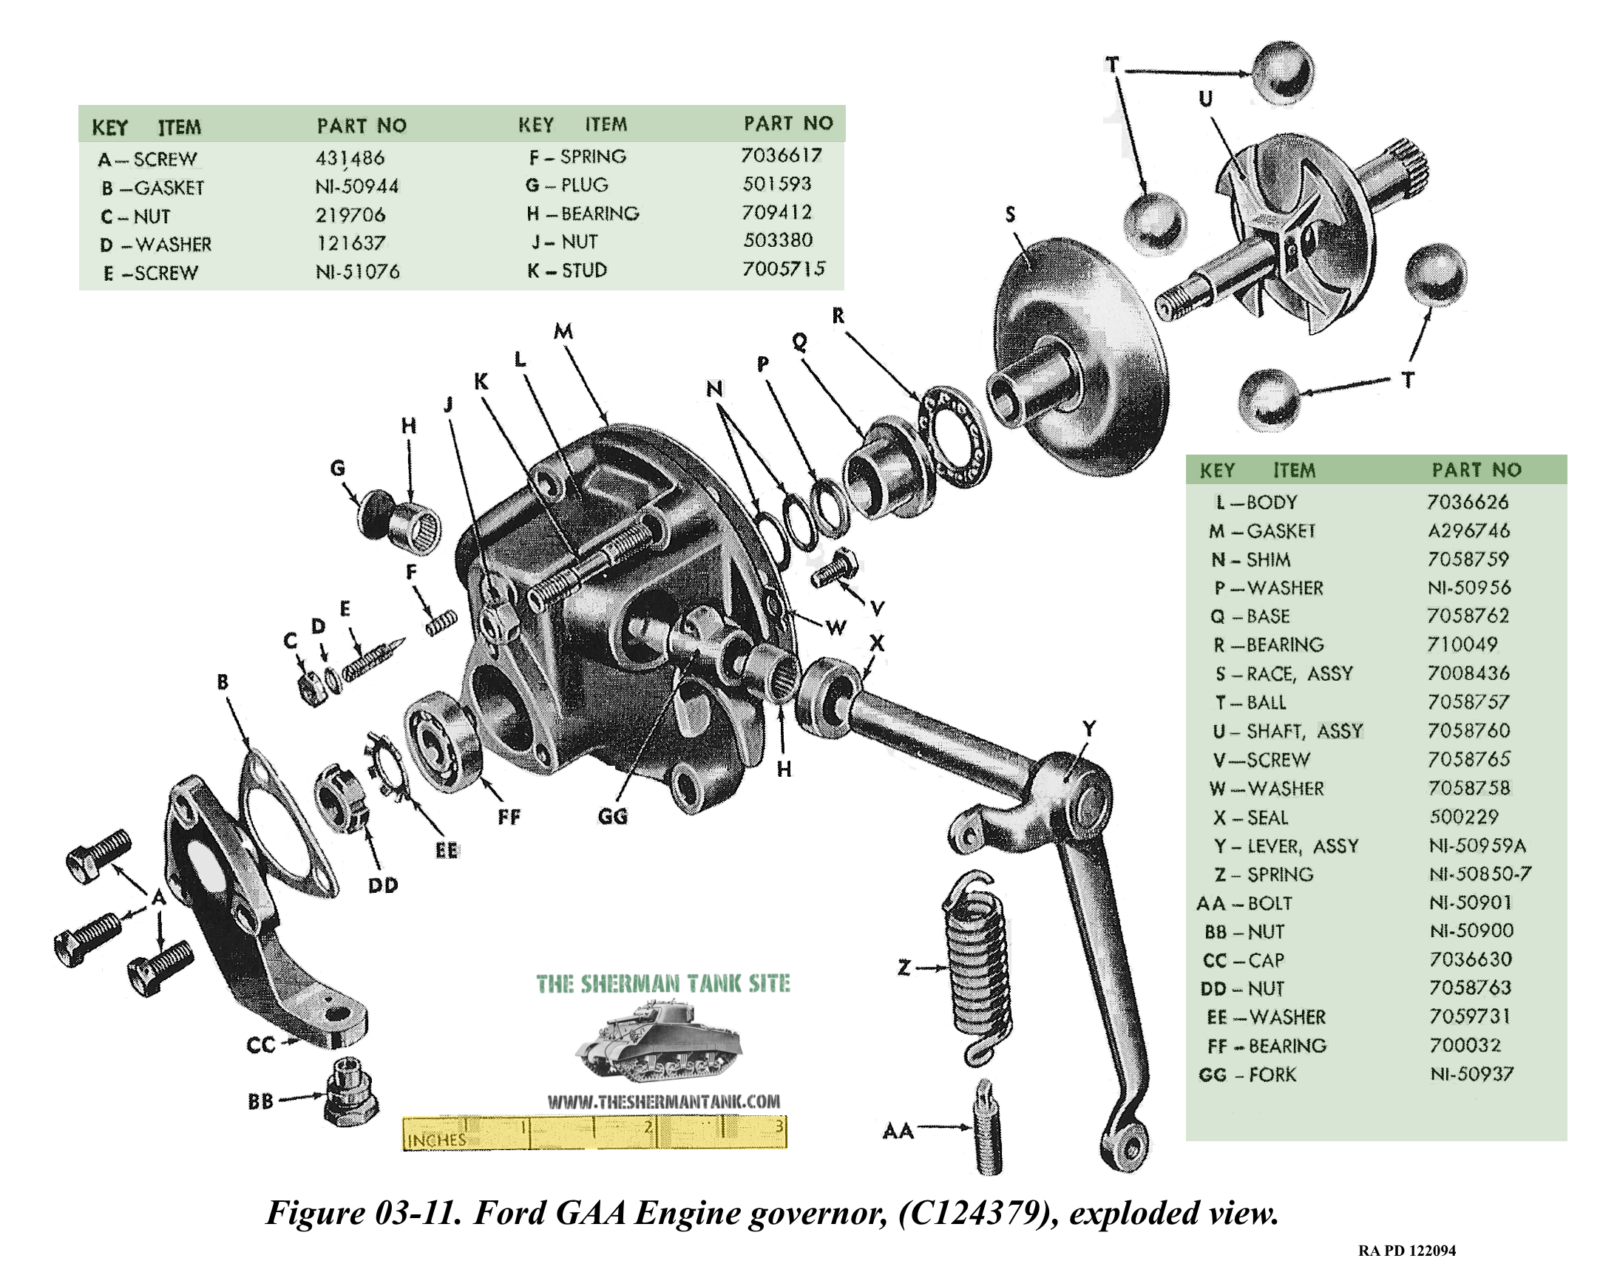 Engine-governor-exploded-view-c124379-im